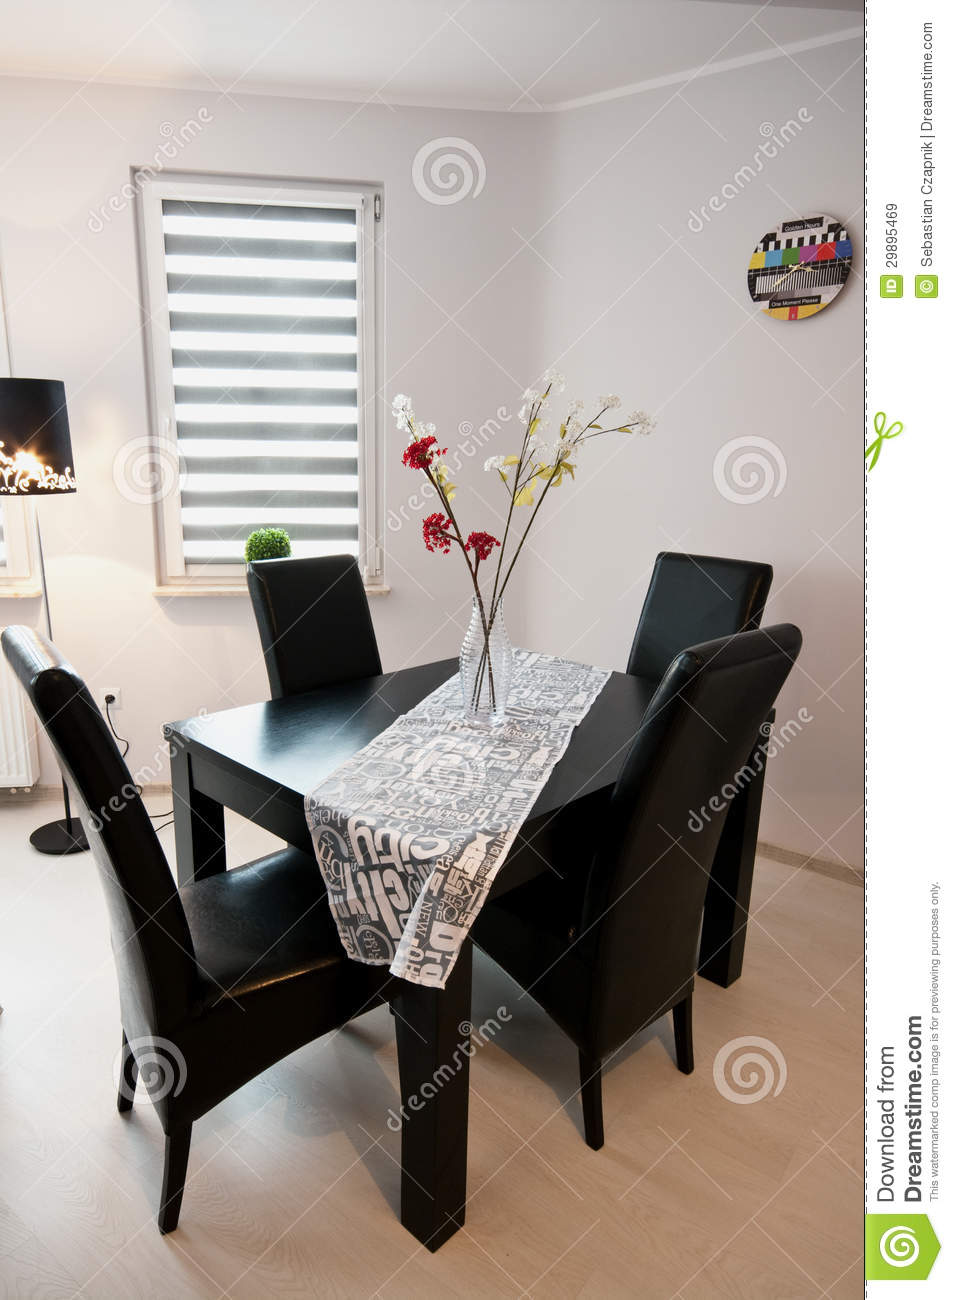 Modern Black And White Dining Room Royalty Free Stock  : modern dining room sleek black table leather chairs white walls clock flowers 29895469 from www.dreamstime.com size 954 x 1300 jpeg 115kB